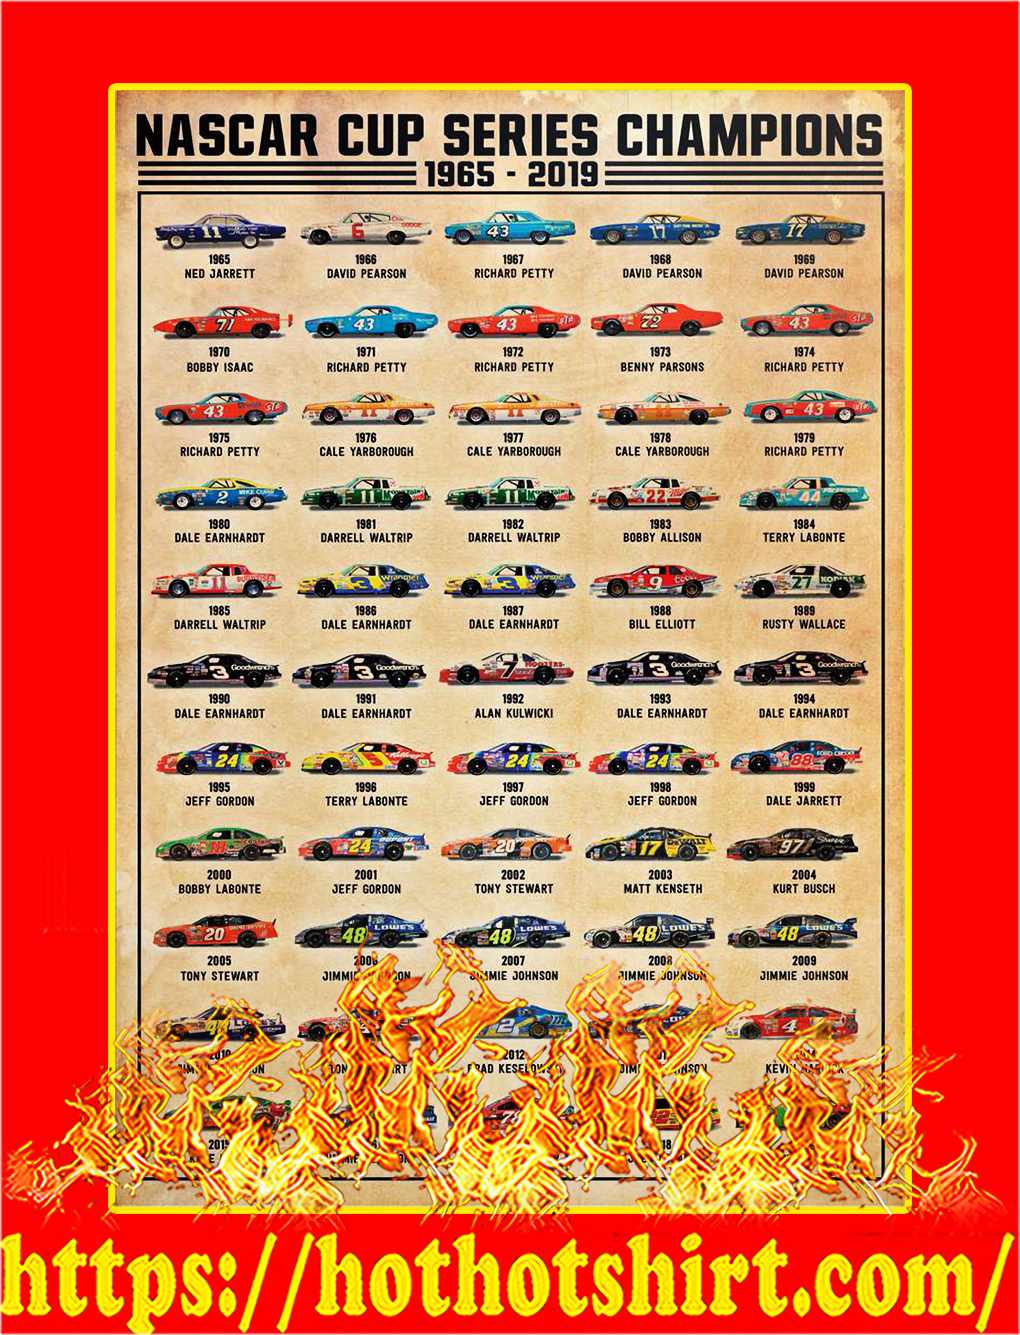 Nascar cup series champions poster - A4